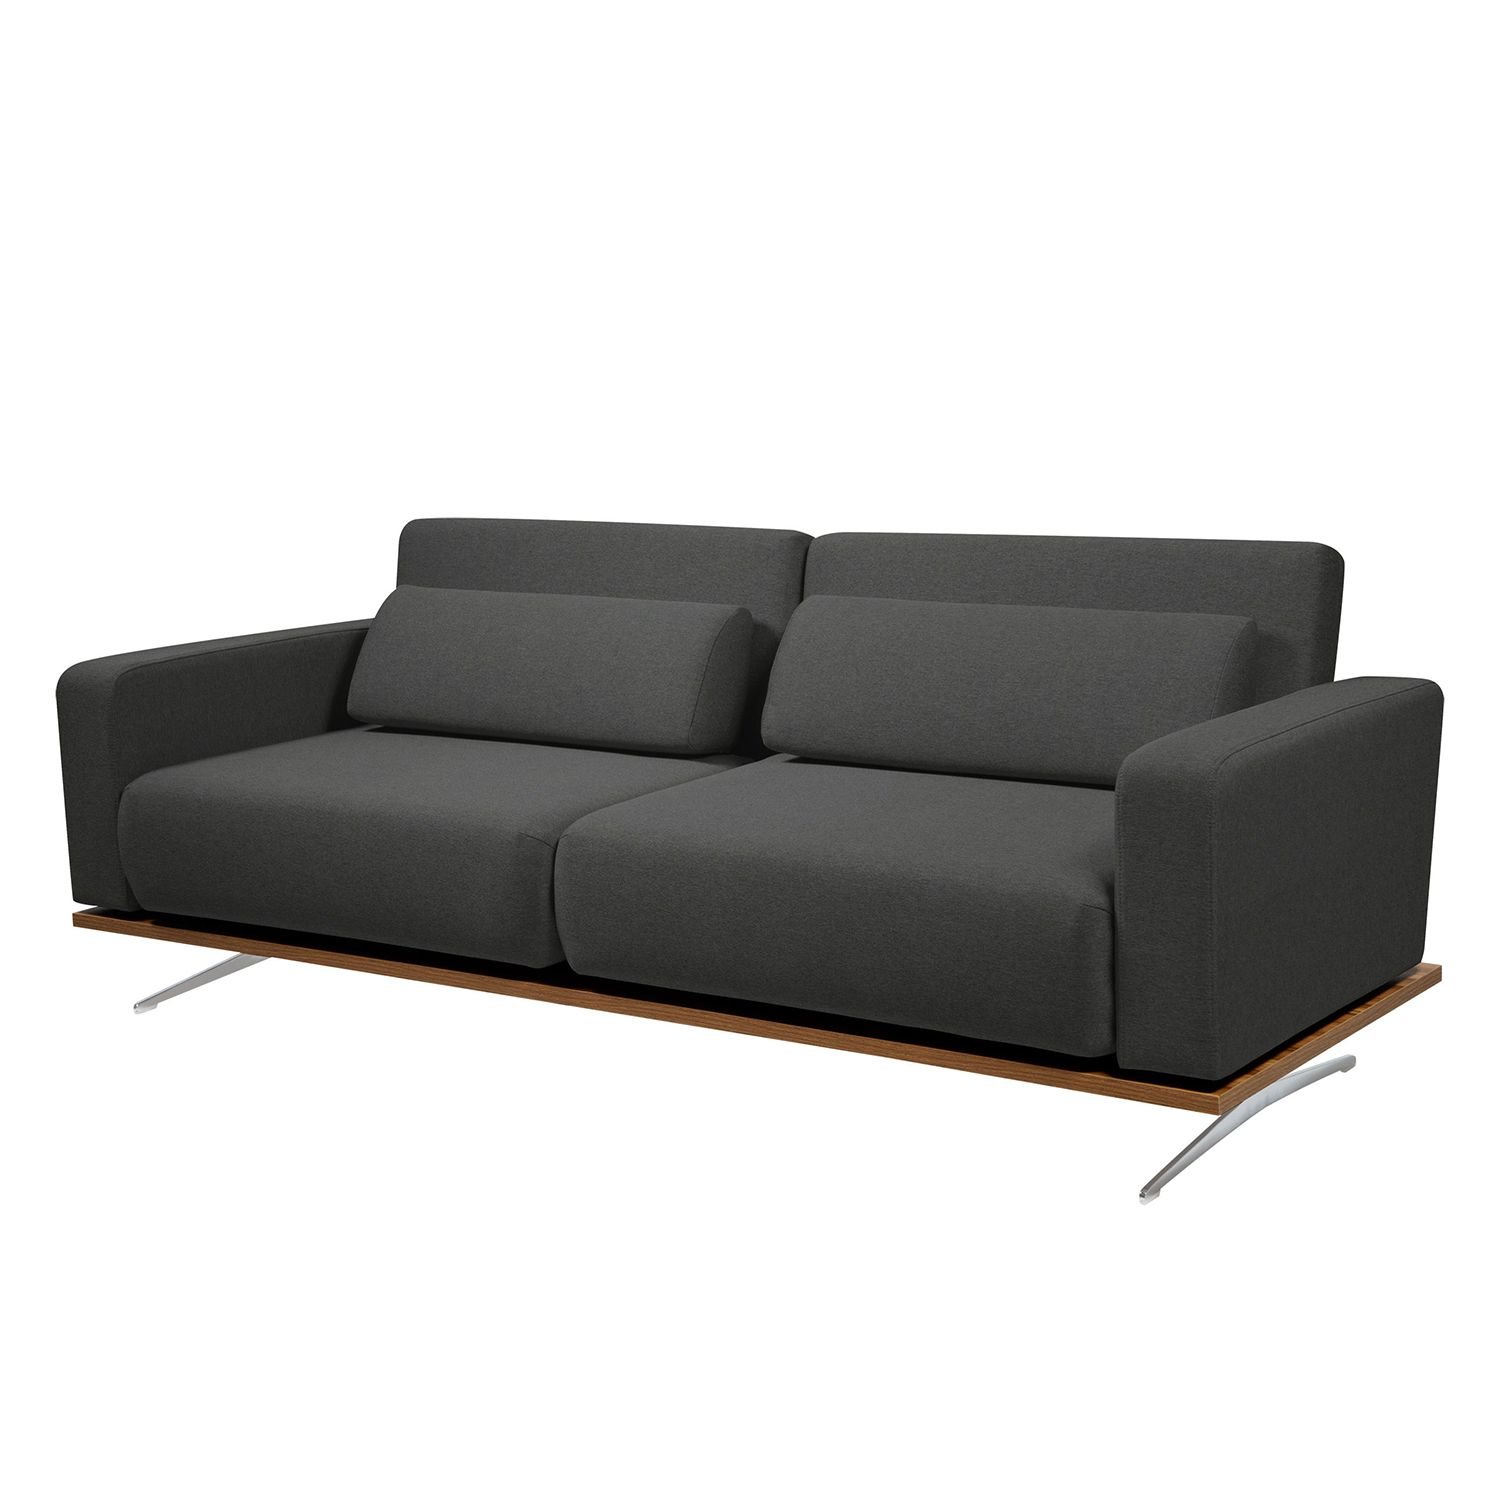 Schlafsofa Copperfield II - Webstoff - Stoff Zahira Anthrazit